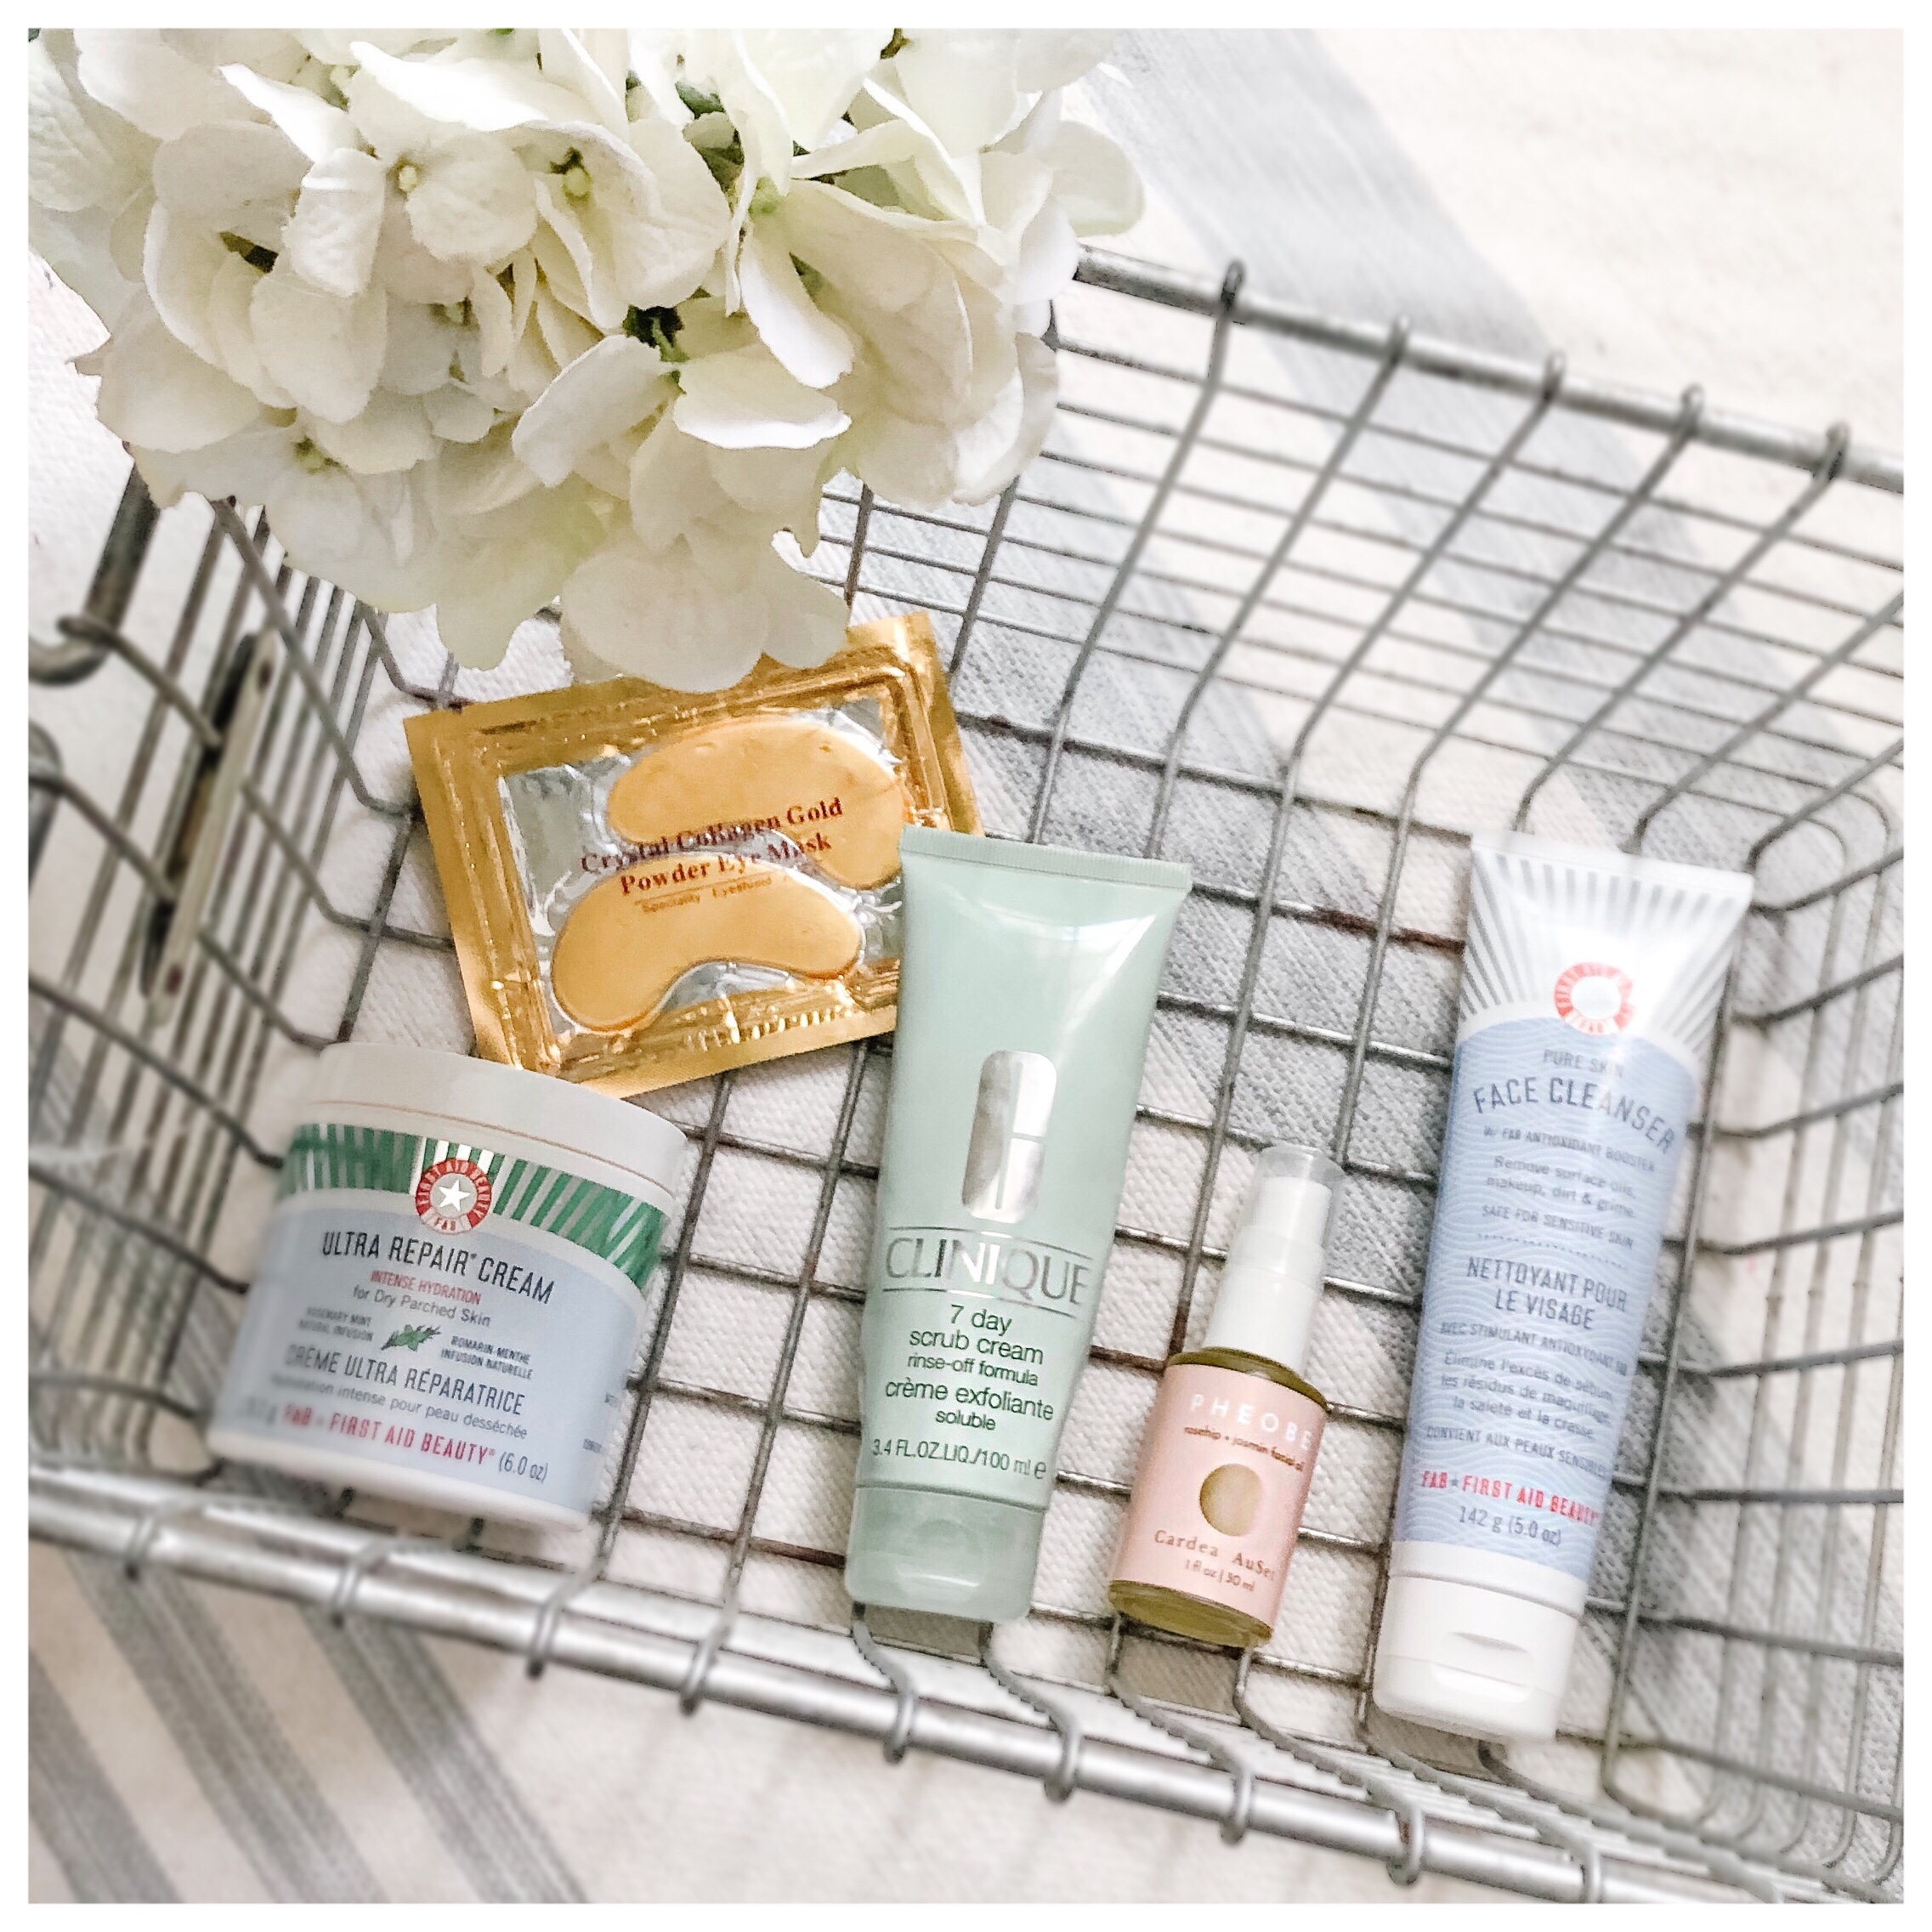 A lot of things change when you reach your mid 30s, including your skincare routine